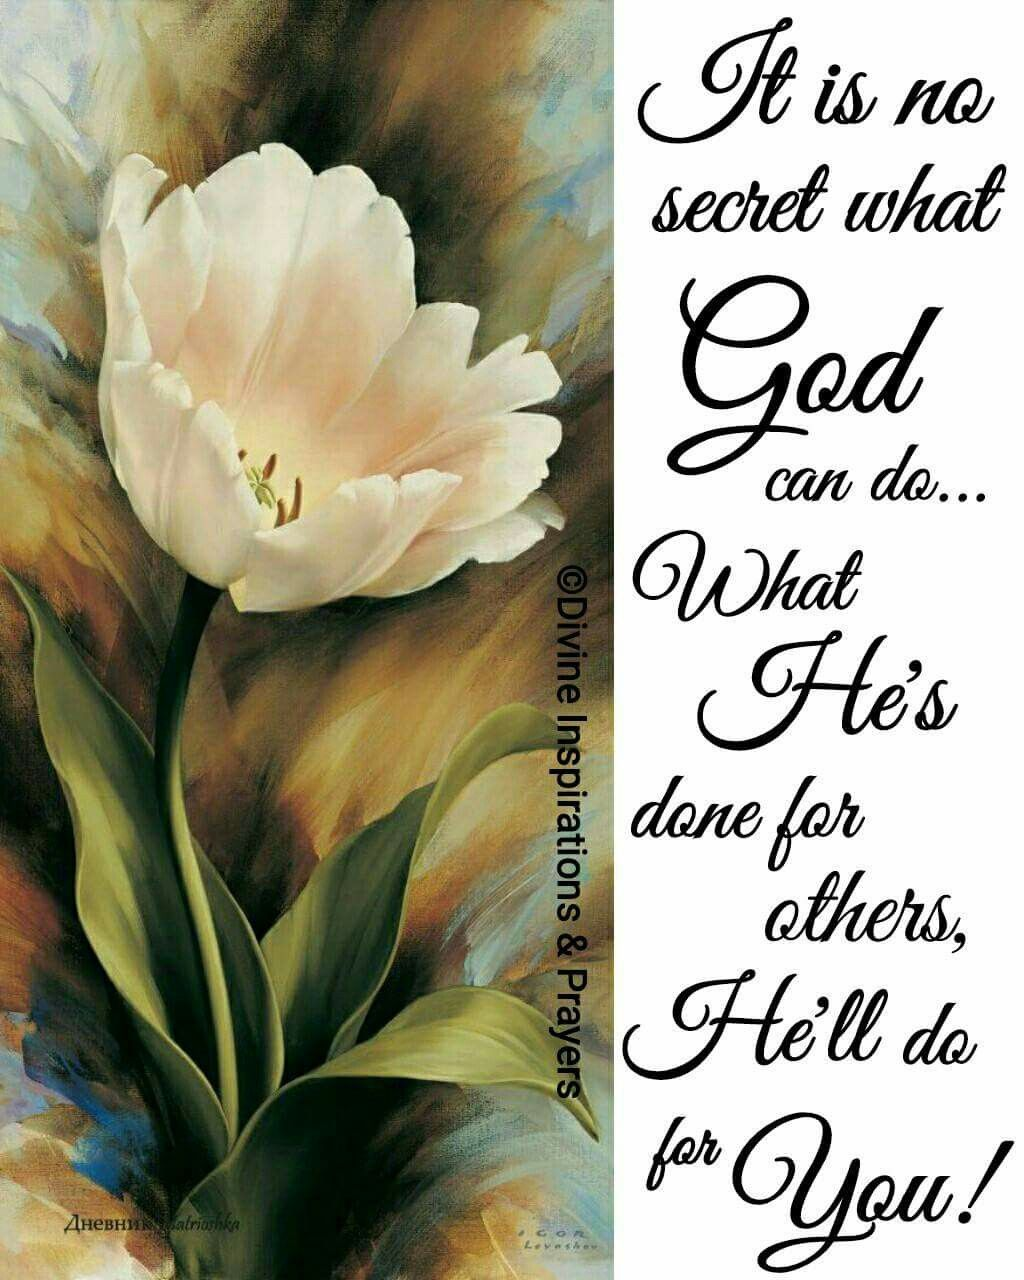 Pin by Maria Twaddle on Painting   Bible verses quotes, Bible quotes